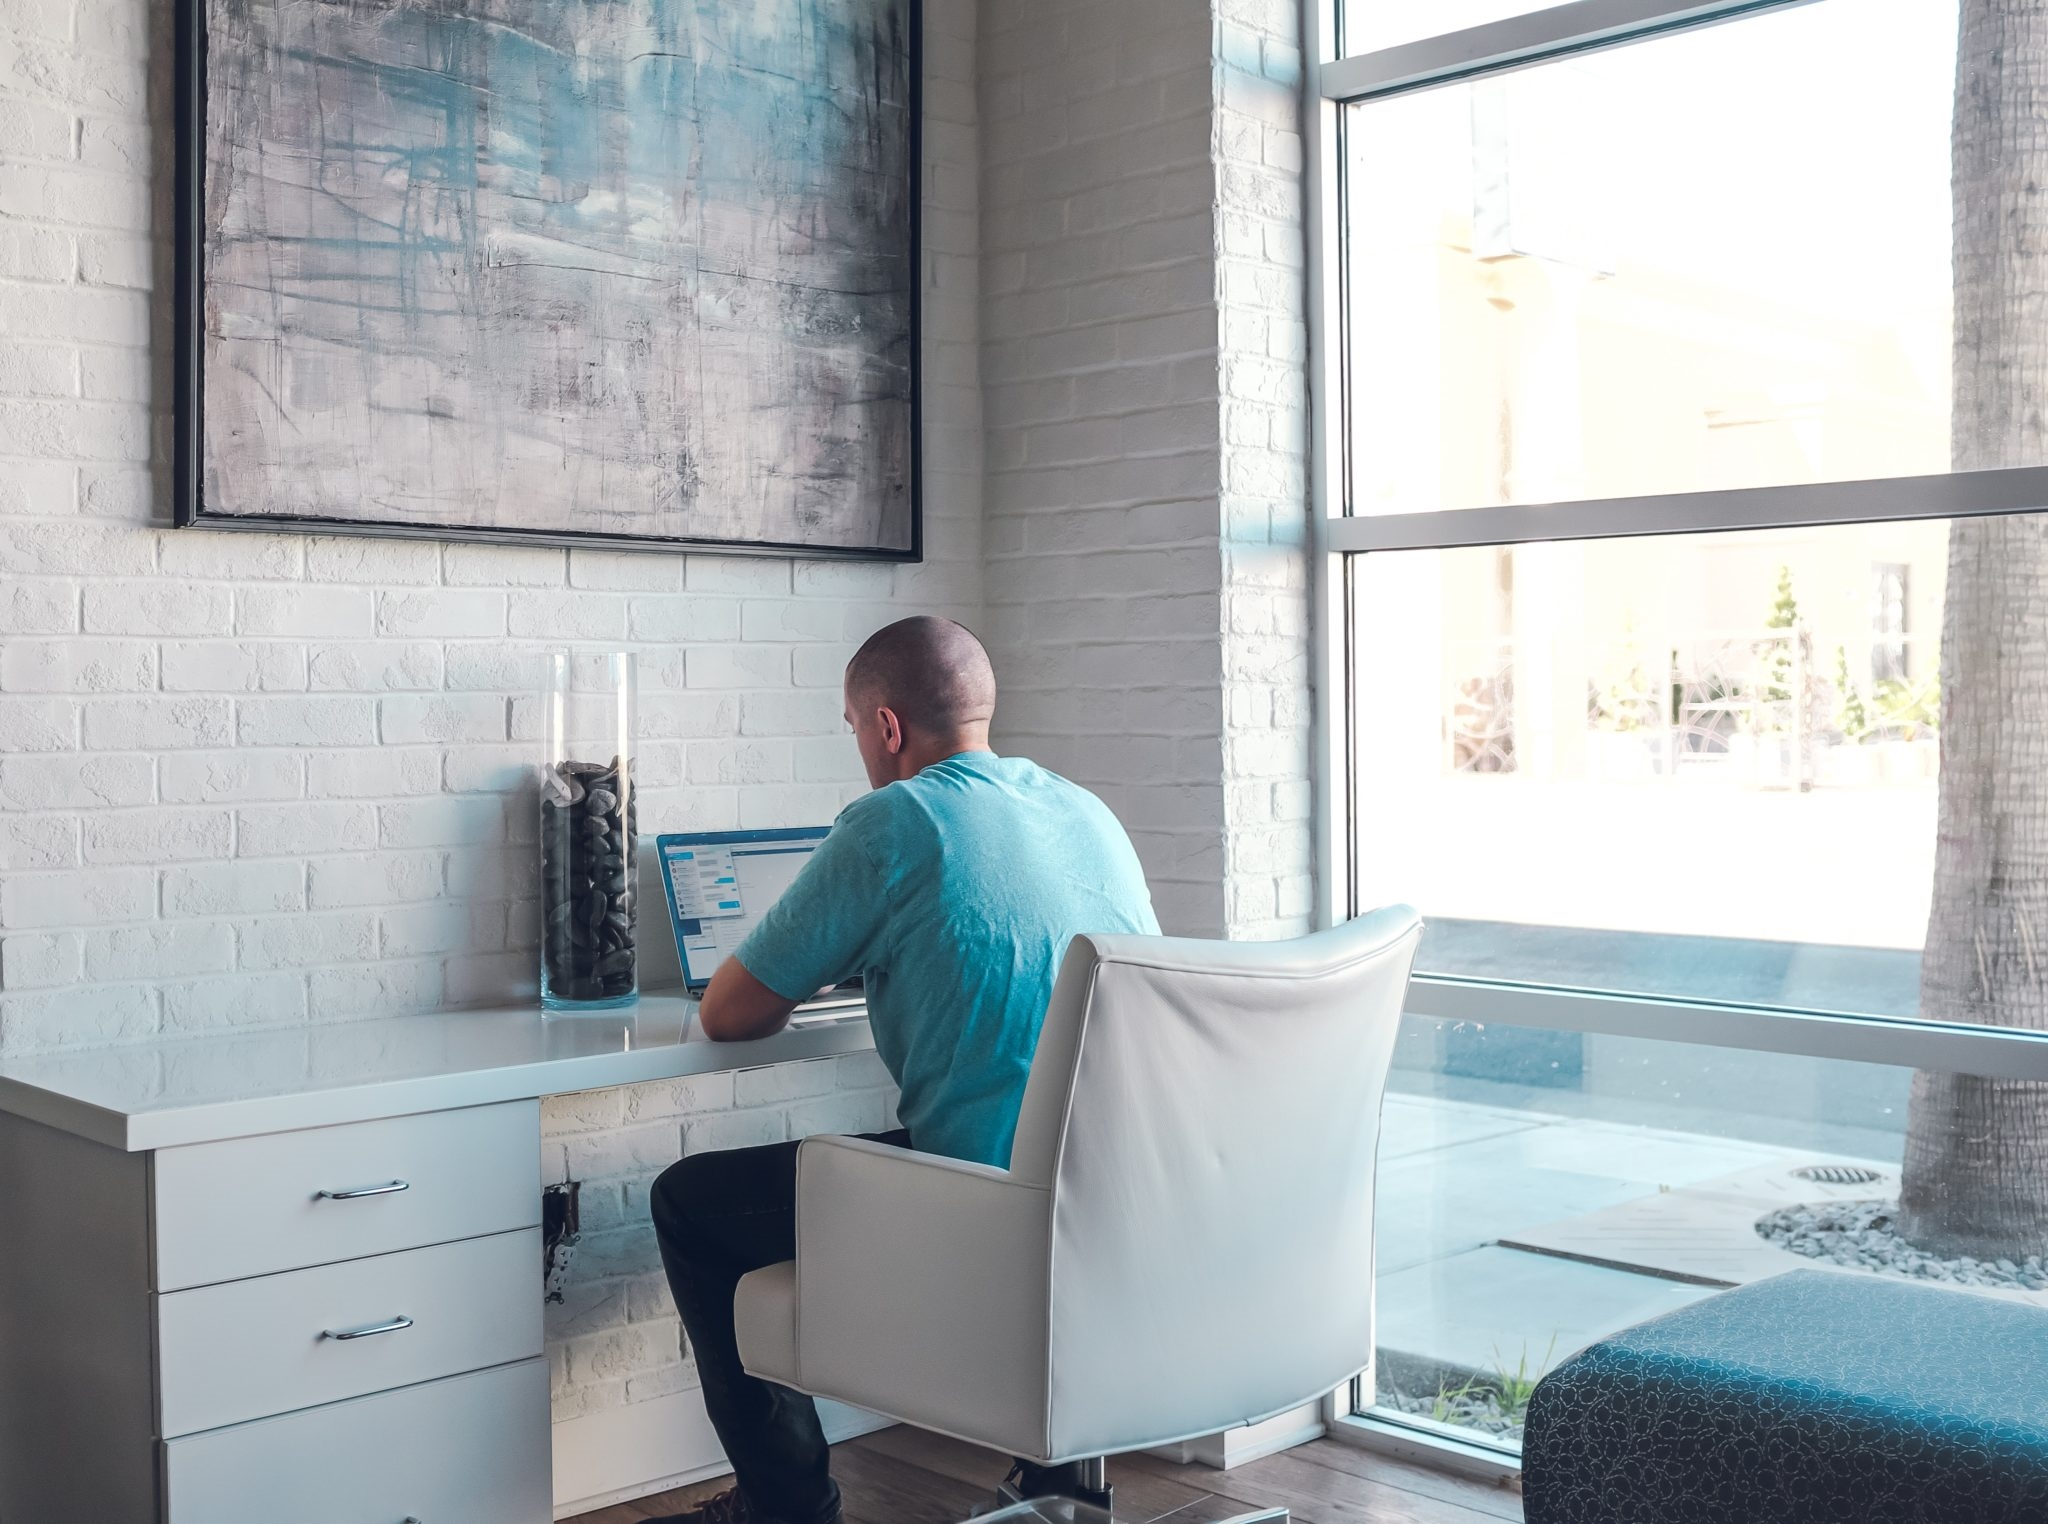 Relocation vs. Remote Worker: Which Is Best for Top Marketing Talent?